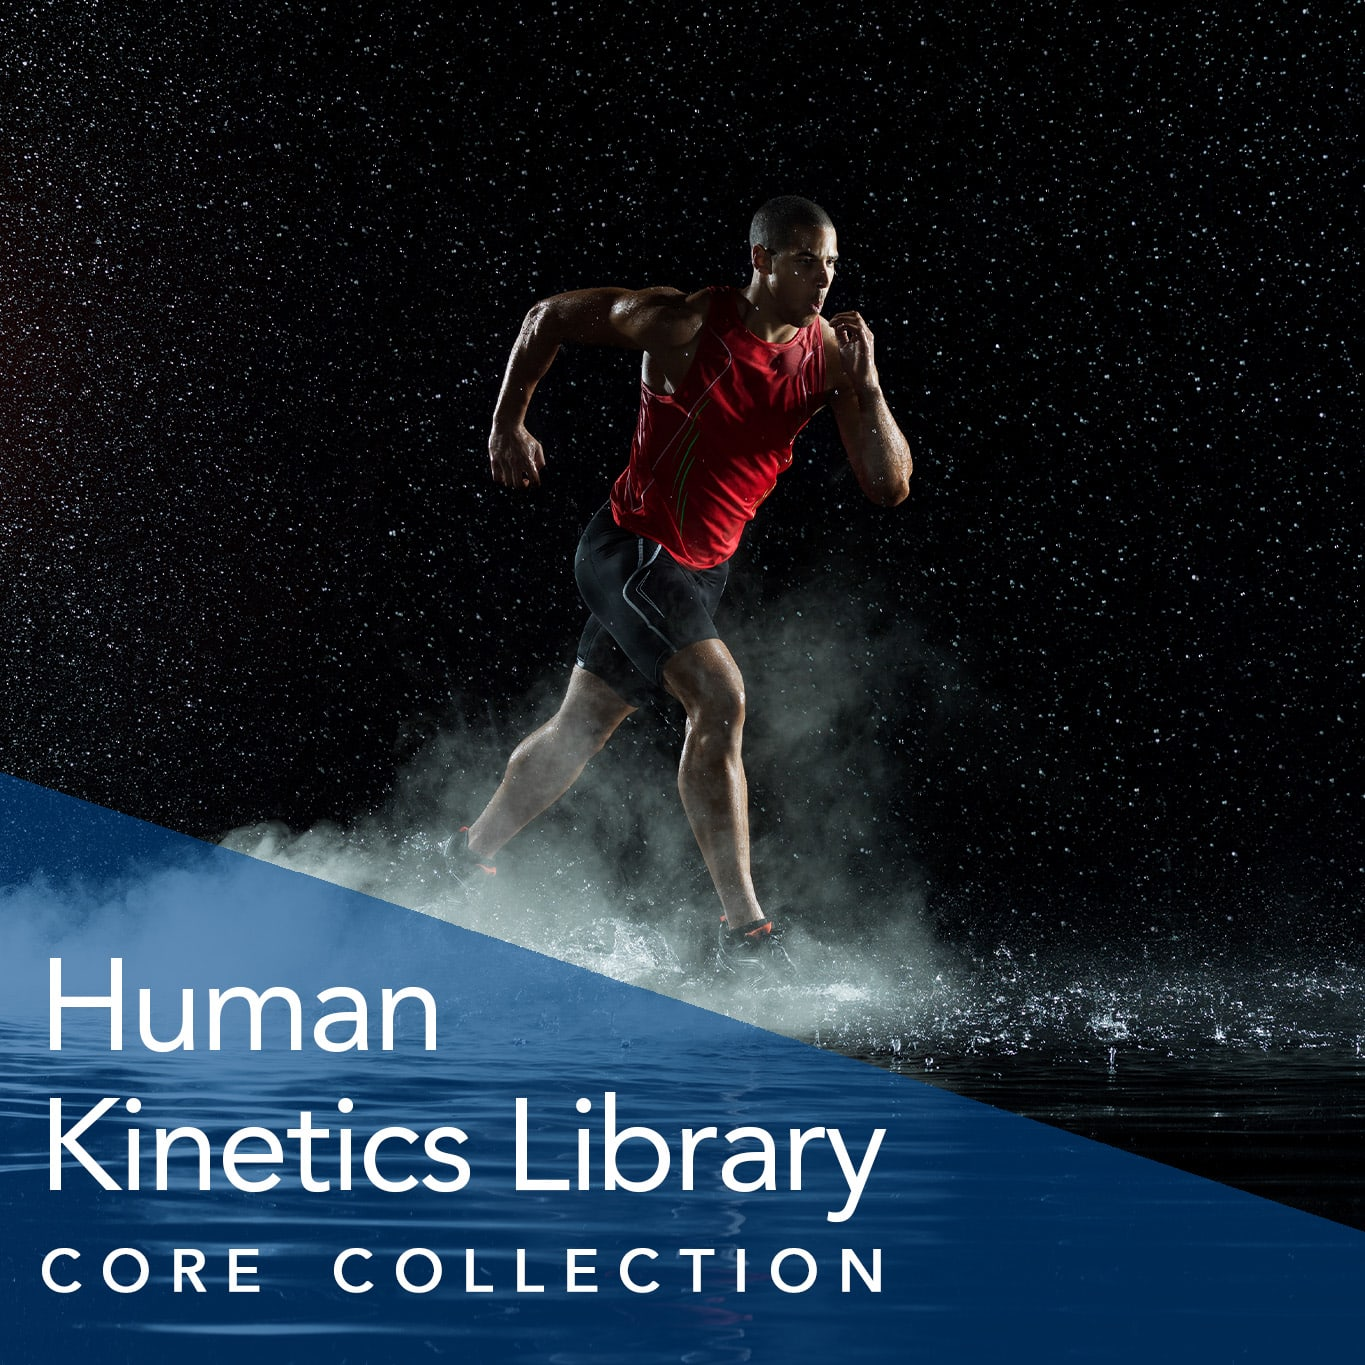 Browse the Human Kinetics Library Core Collection